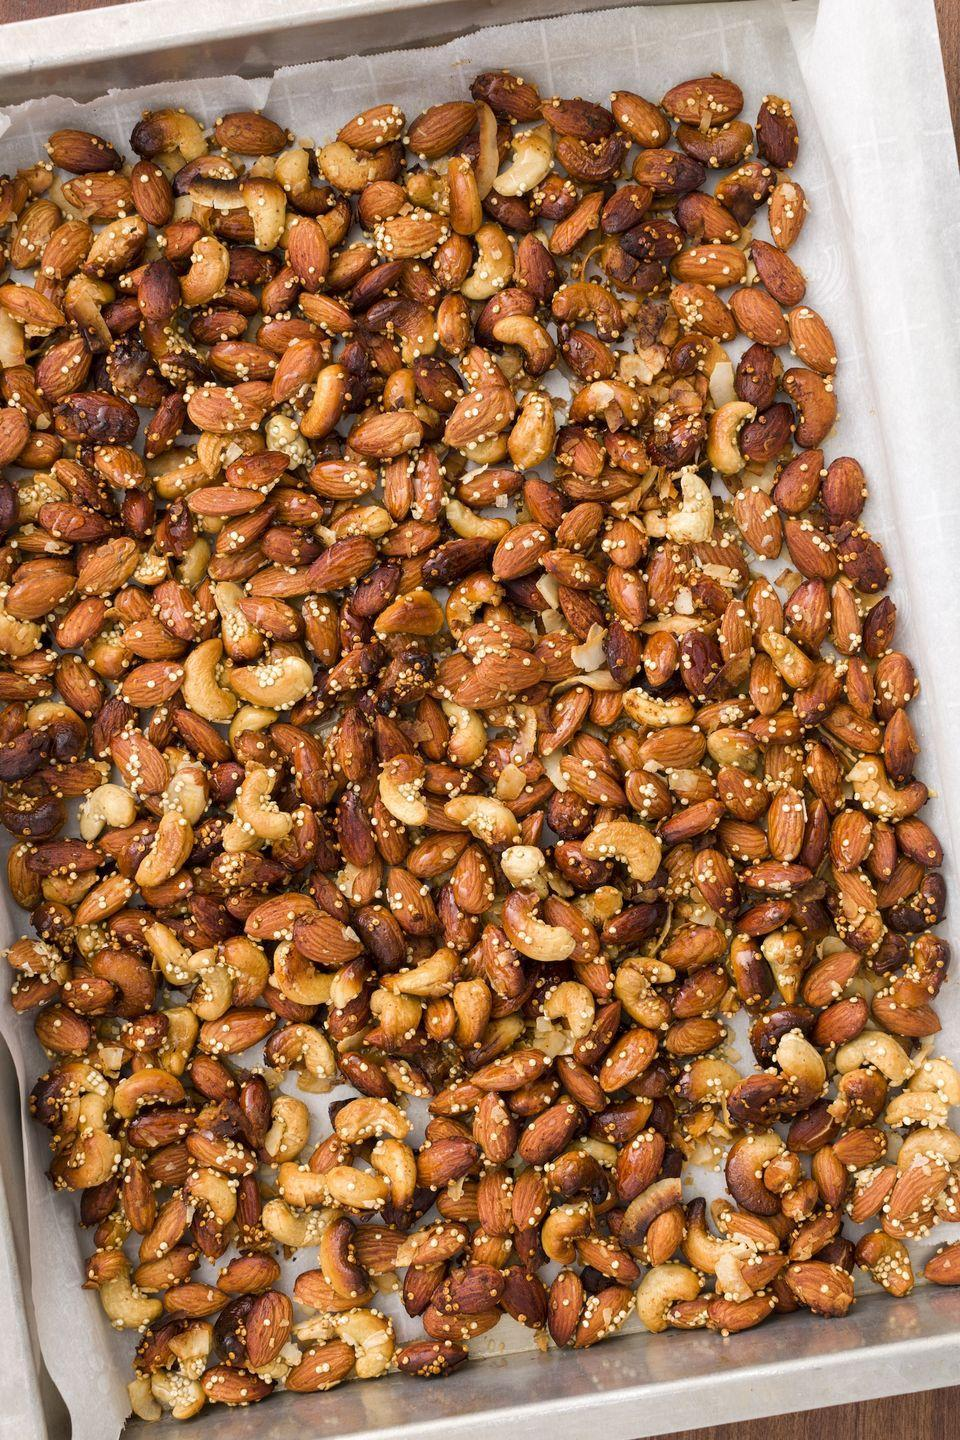 """<p>Battle hunger with this simple sweet-spicy nut mix of quinoa, honey, cayenne, and ginger.</p><p>Get the recipe from <a href=""""https://www.delish.com/cooking/recipe-ideas/recipes/a45381/sweet-n-spicy-nuts-recipe/"""" rel=""""nofollow noopener"""" target=""""_blank"""" data-ylk=""""slk:Delish"""" class=""""link rapid-noclick-resp"""">Delish</a>.</p>"""